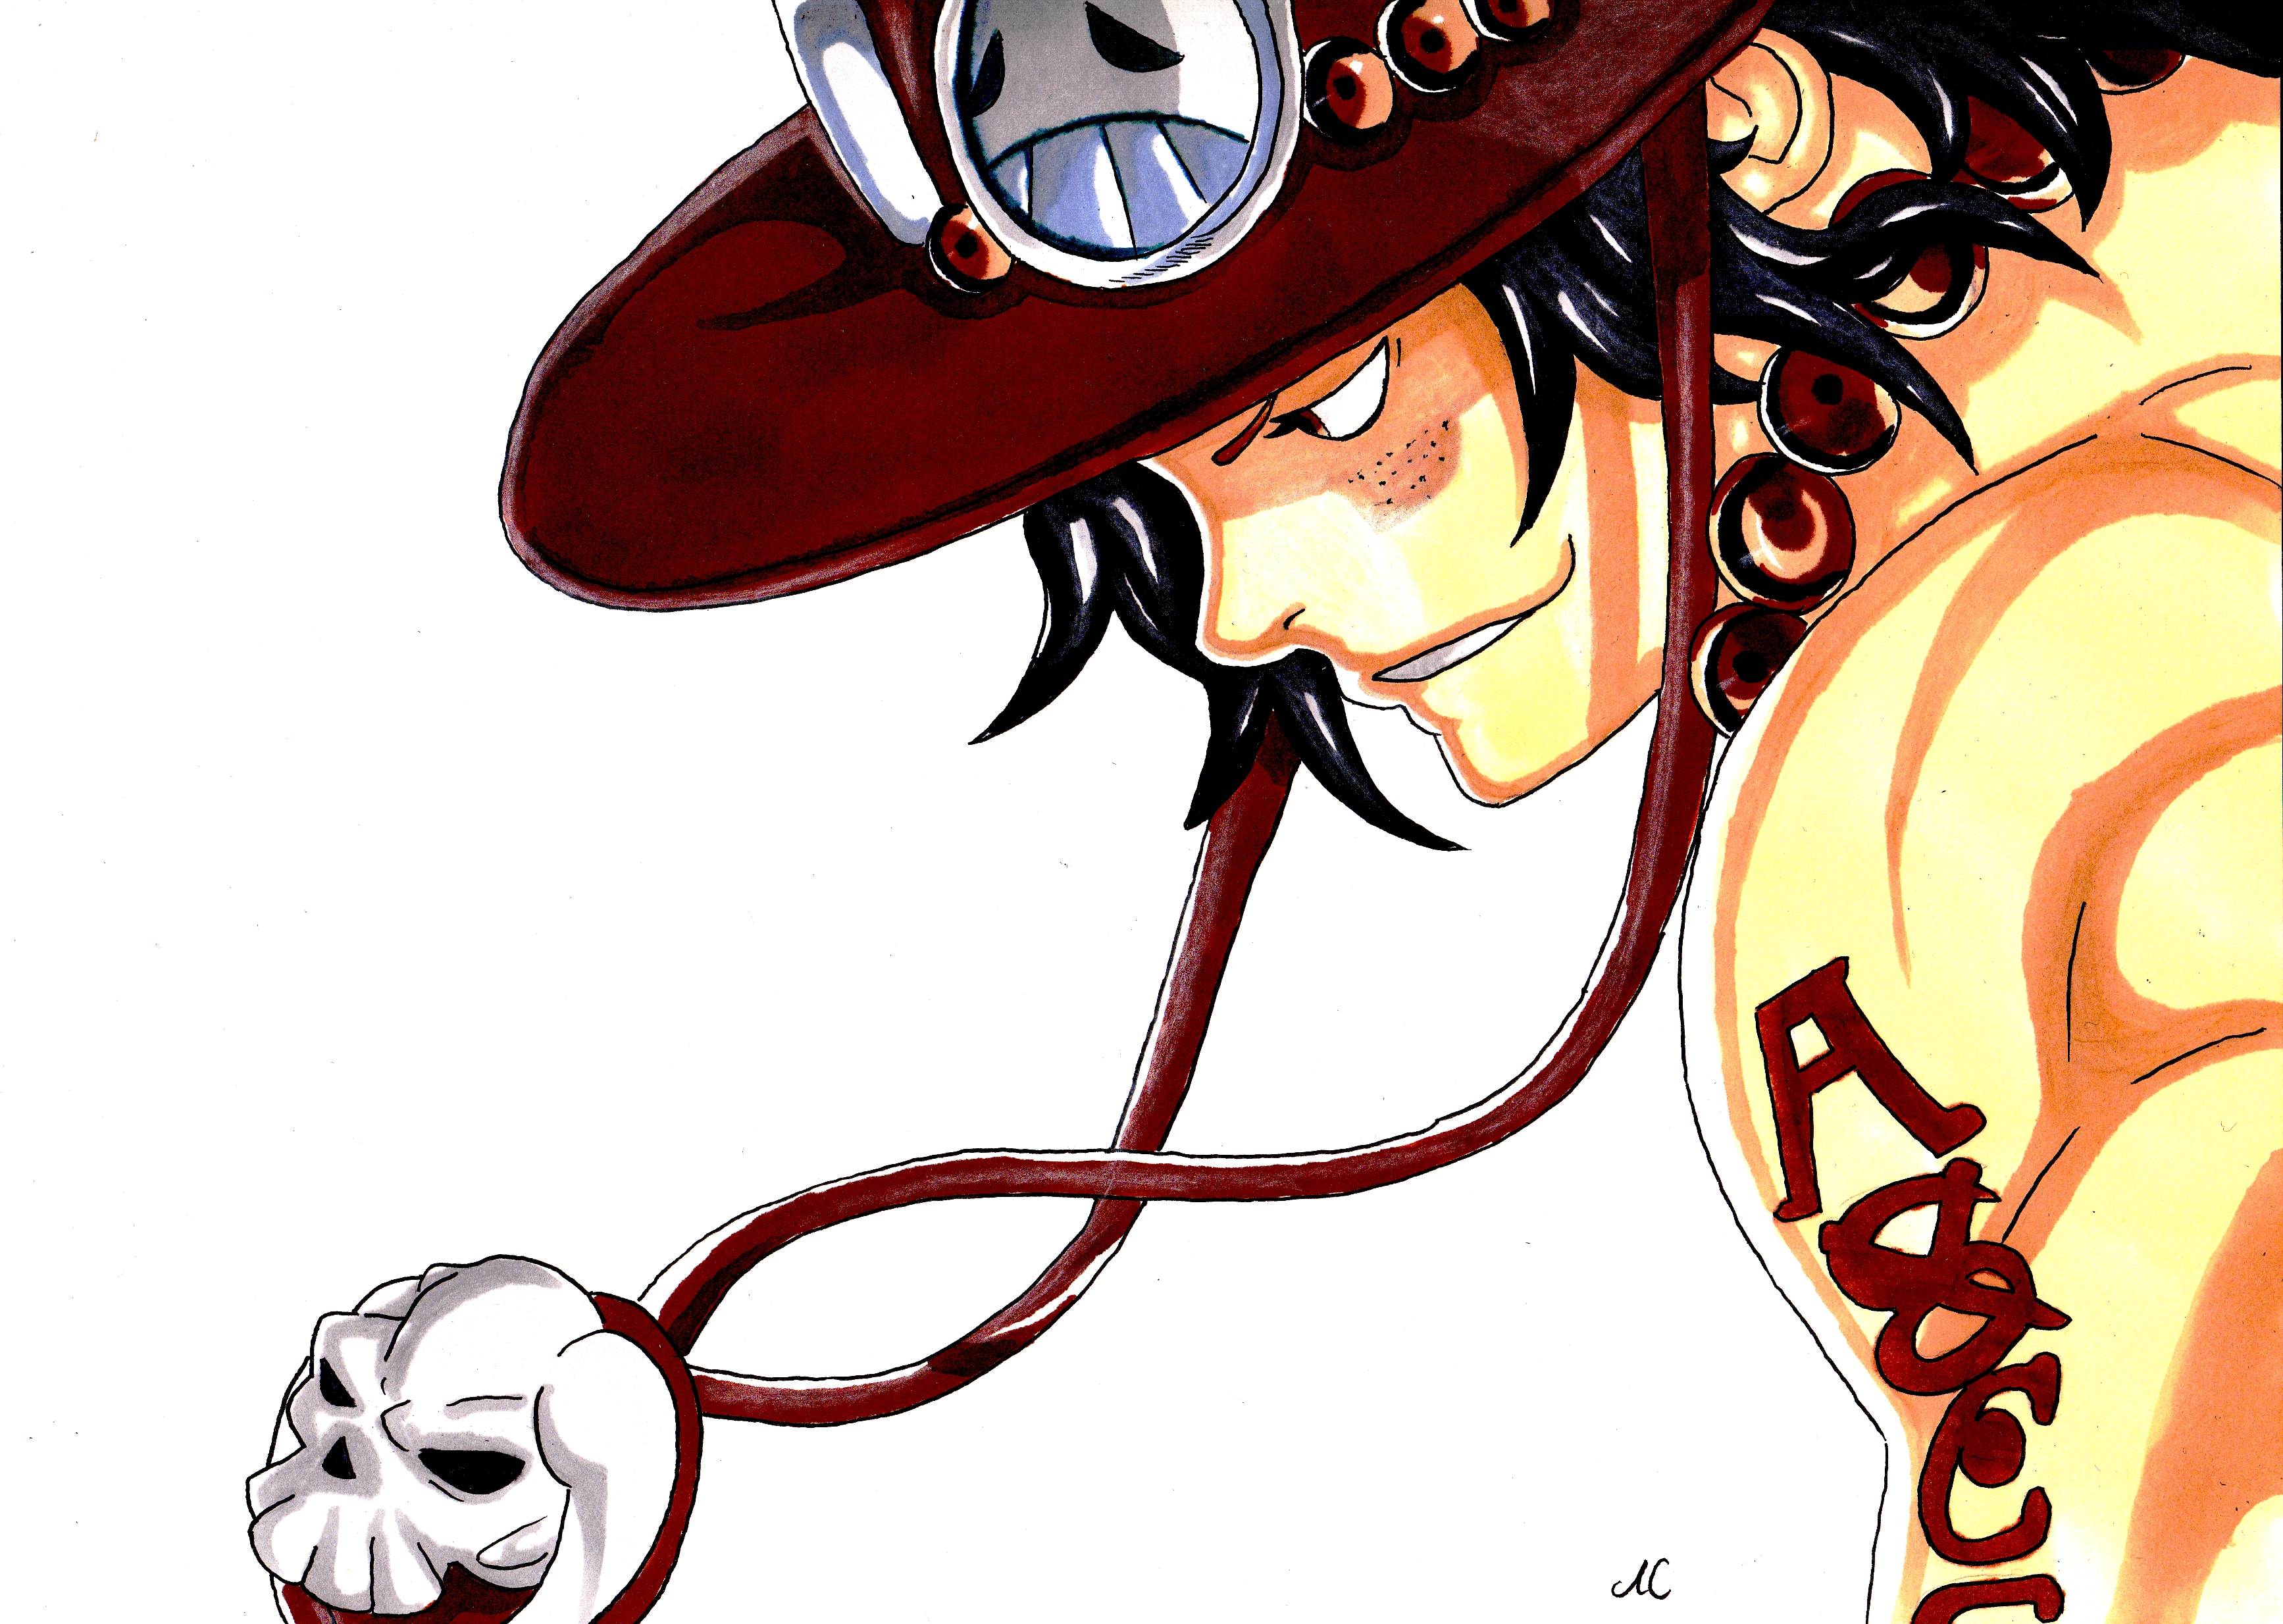 ace from one piece by Erua2 on DeviantArt